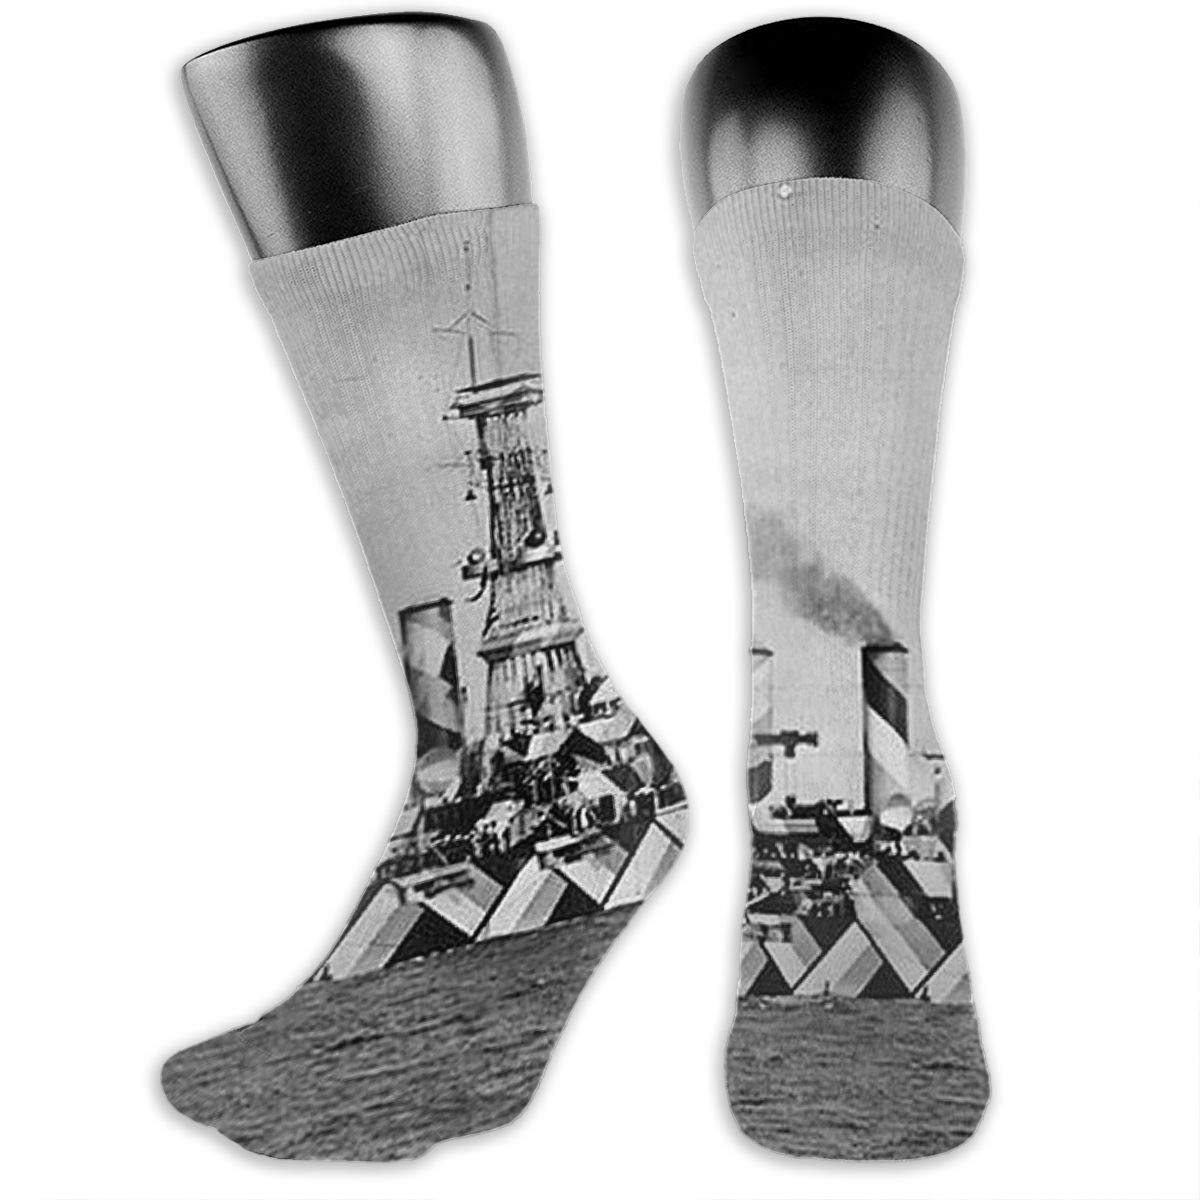 OLGCZM Camouflage Disruptive Pattern Men Womens Thin High Ankle Casual Socks Fit Outdoor Hiking Trail